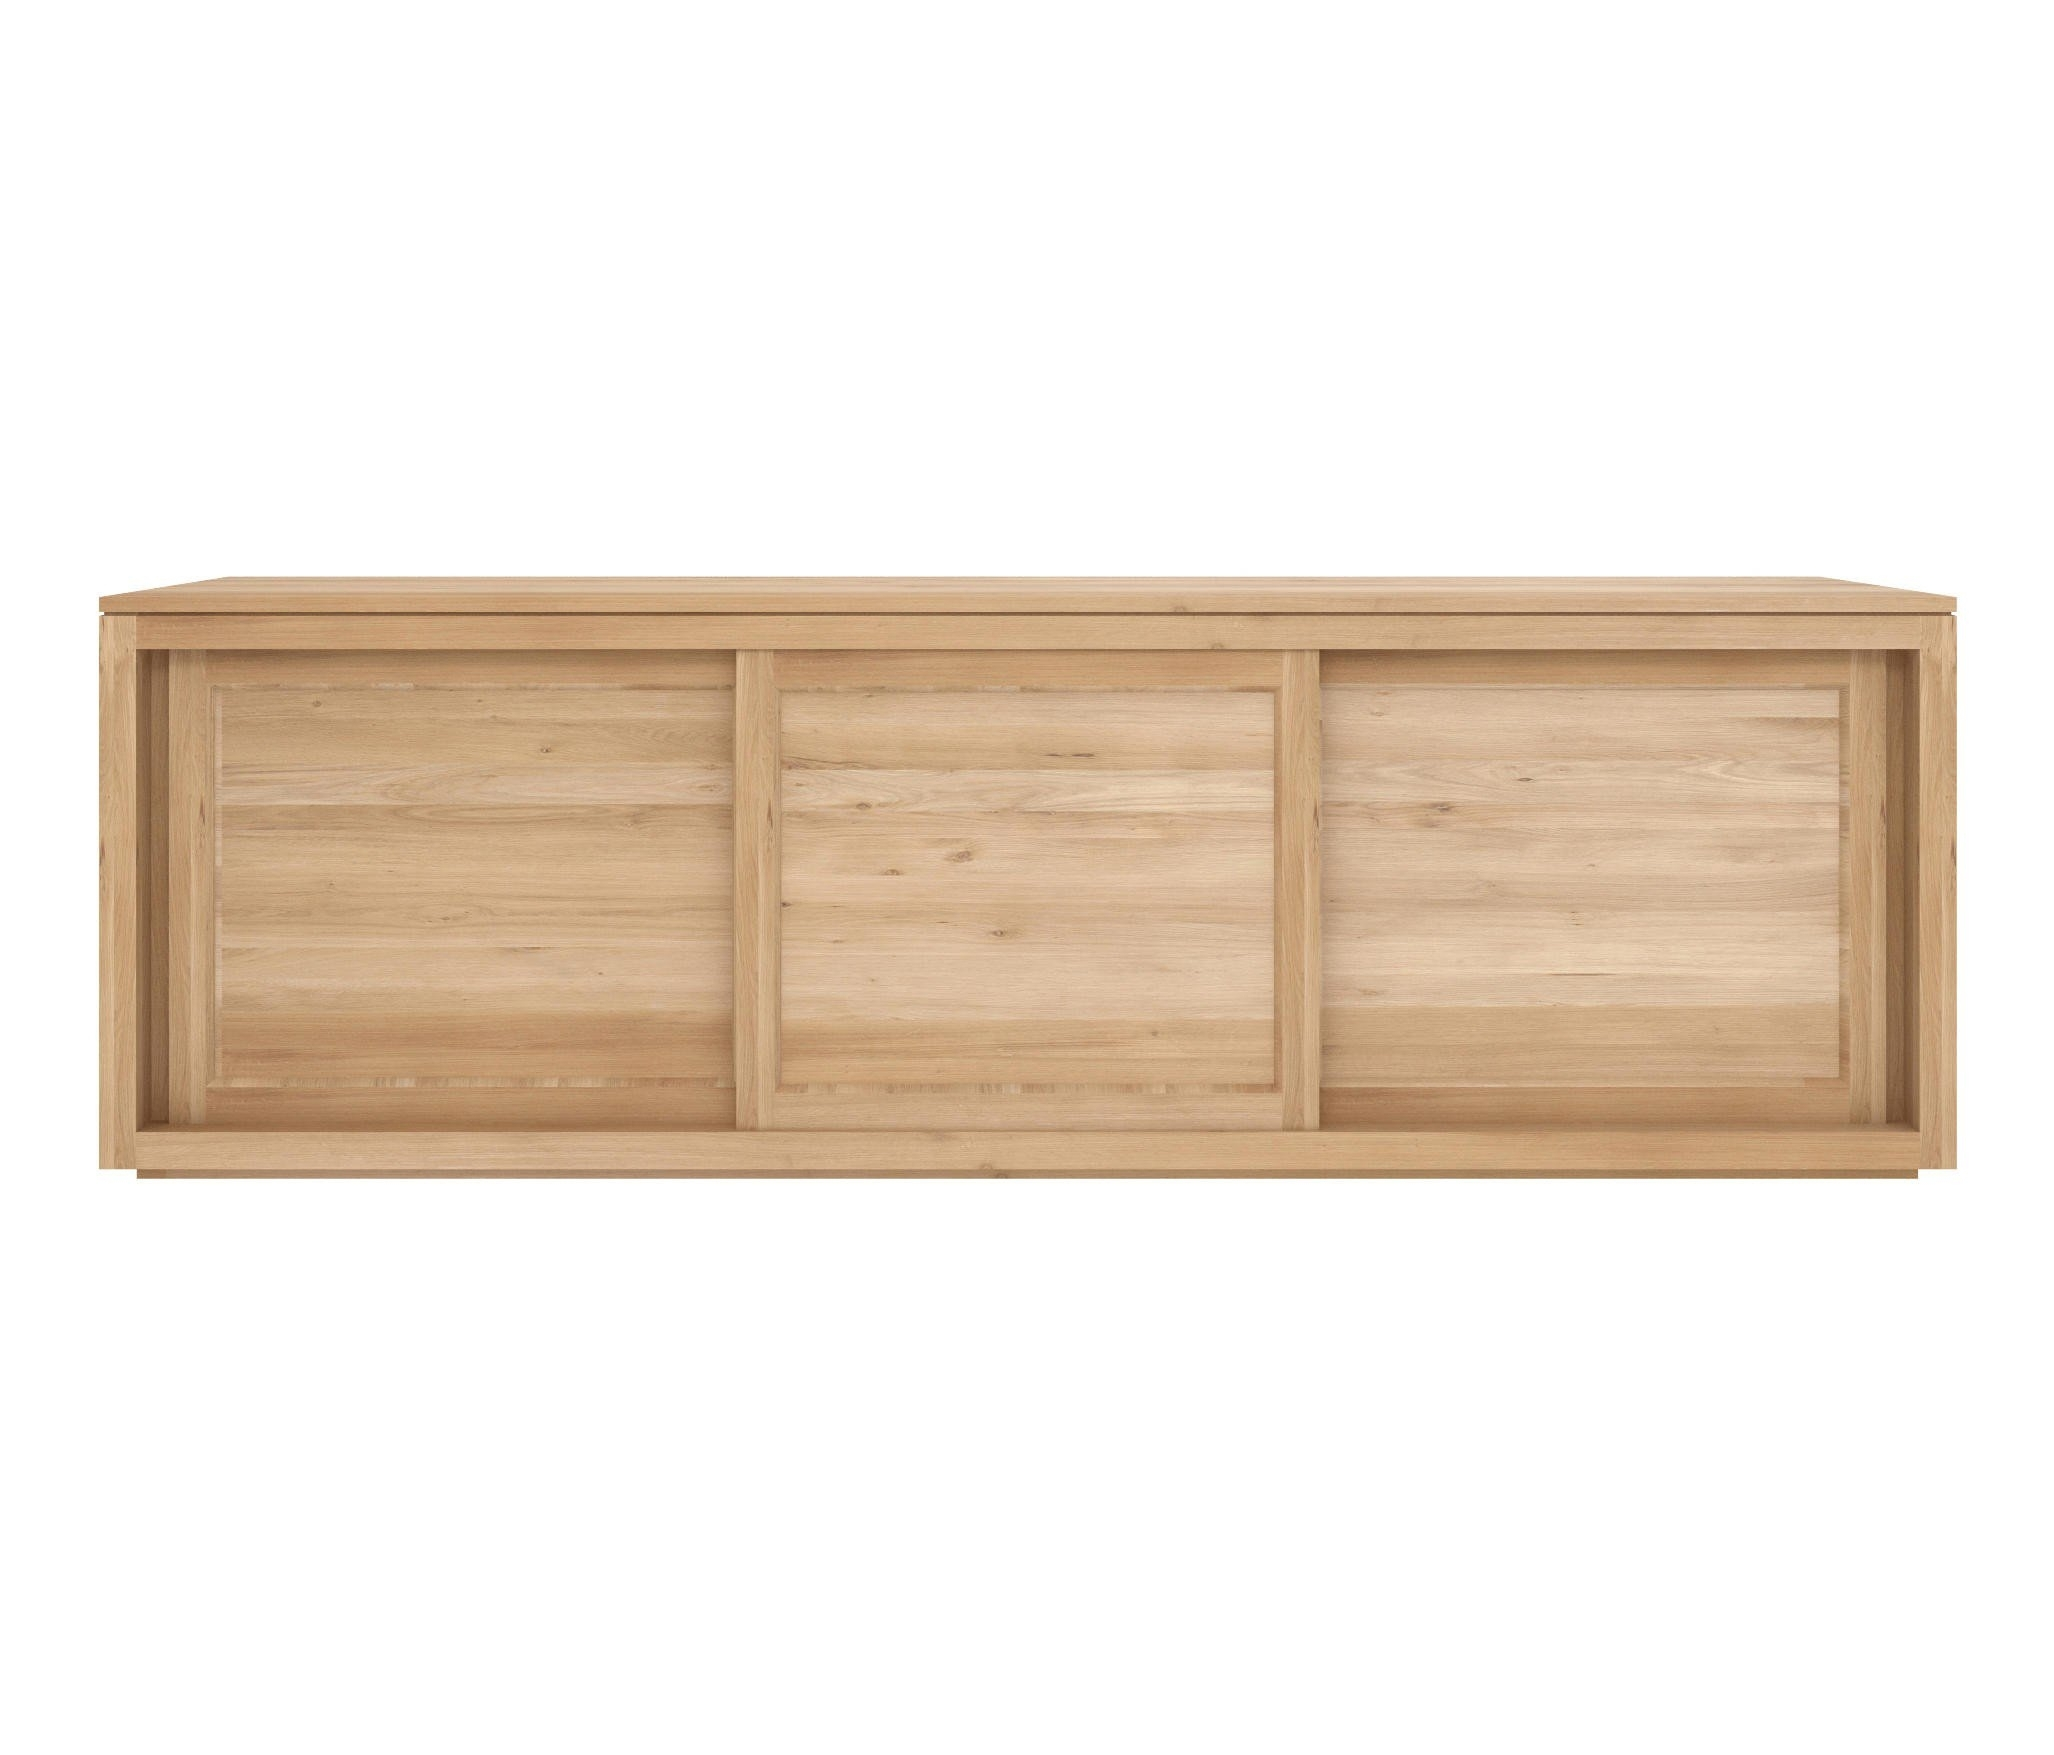 Ethnicraft Oak Pure Sideboard 200 Cm - 3 Sliding Doors within 4 Door Wood Squares Sideboards (Image 13 of 30)